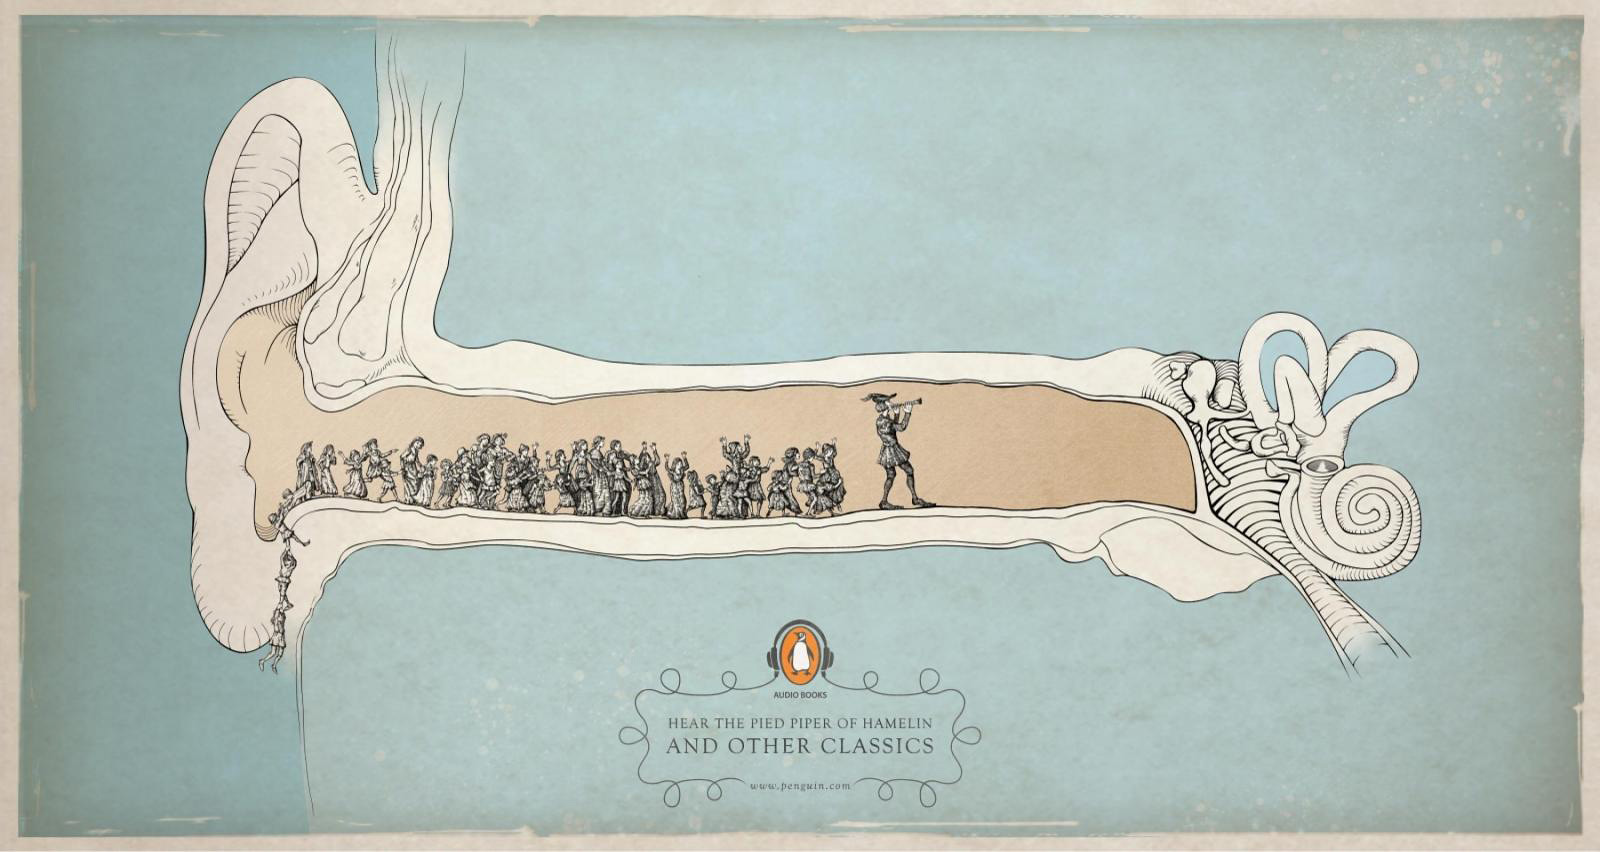 https://i0.wp.com/theinspirationroom.com/daily/print/2012/5/penguin_audio_books_pied_piper.jpg